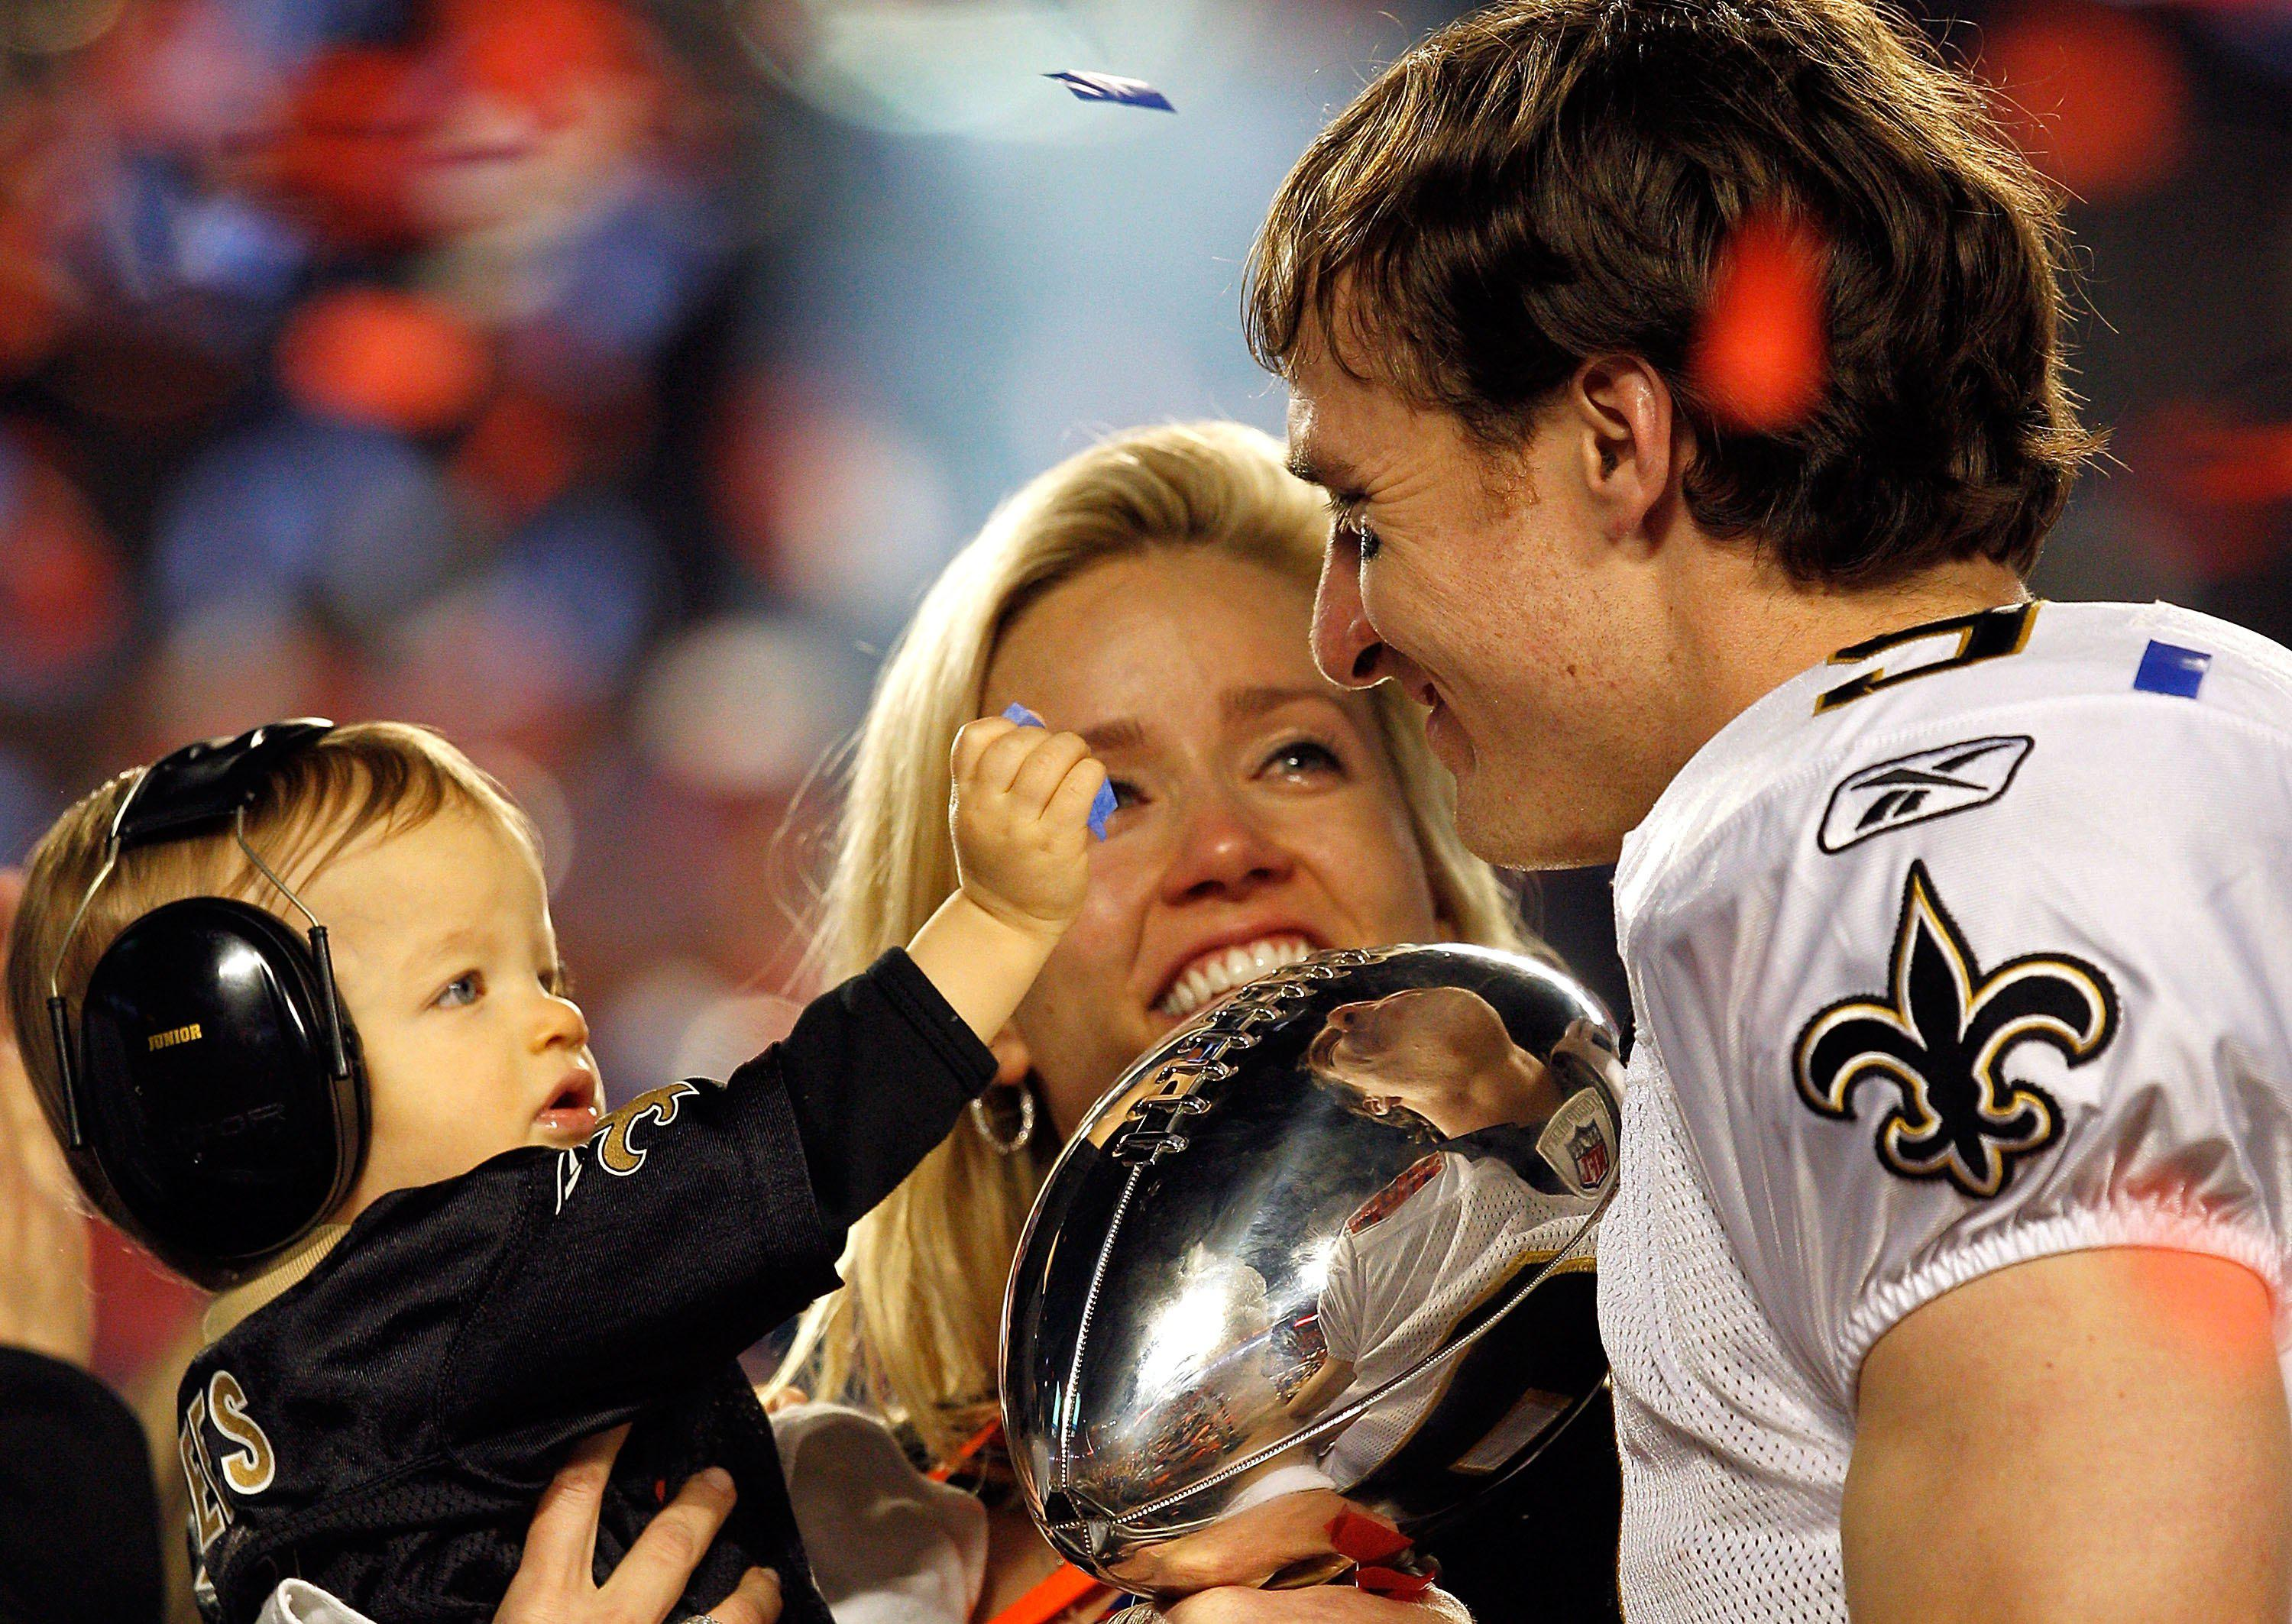 MIAMI GARDENS, FL - FEBRUARY 07:  Drew Brees #9 of the New Orleans Saints celebrates with his son Baylen Brees and wife Brittany Brees after defeating the Indianapolis Colts during Super Bowl XLIV on February 7, 2010 at Sun Life Stadium in Miami Gardens, Florida.  (Photo by Jonathan Daniel/Getty Images)